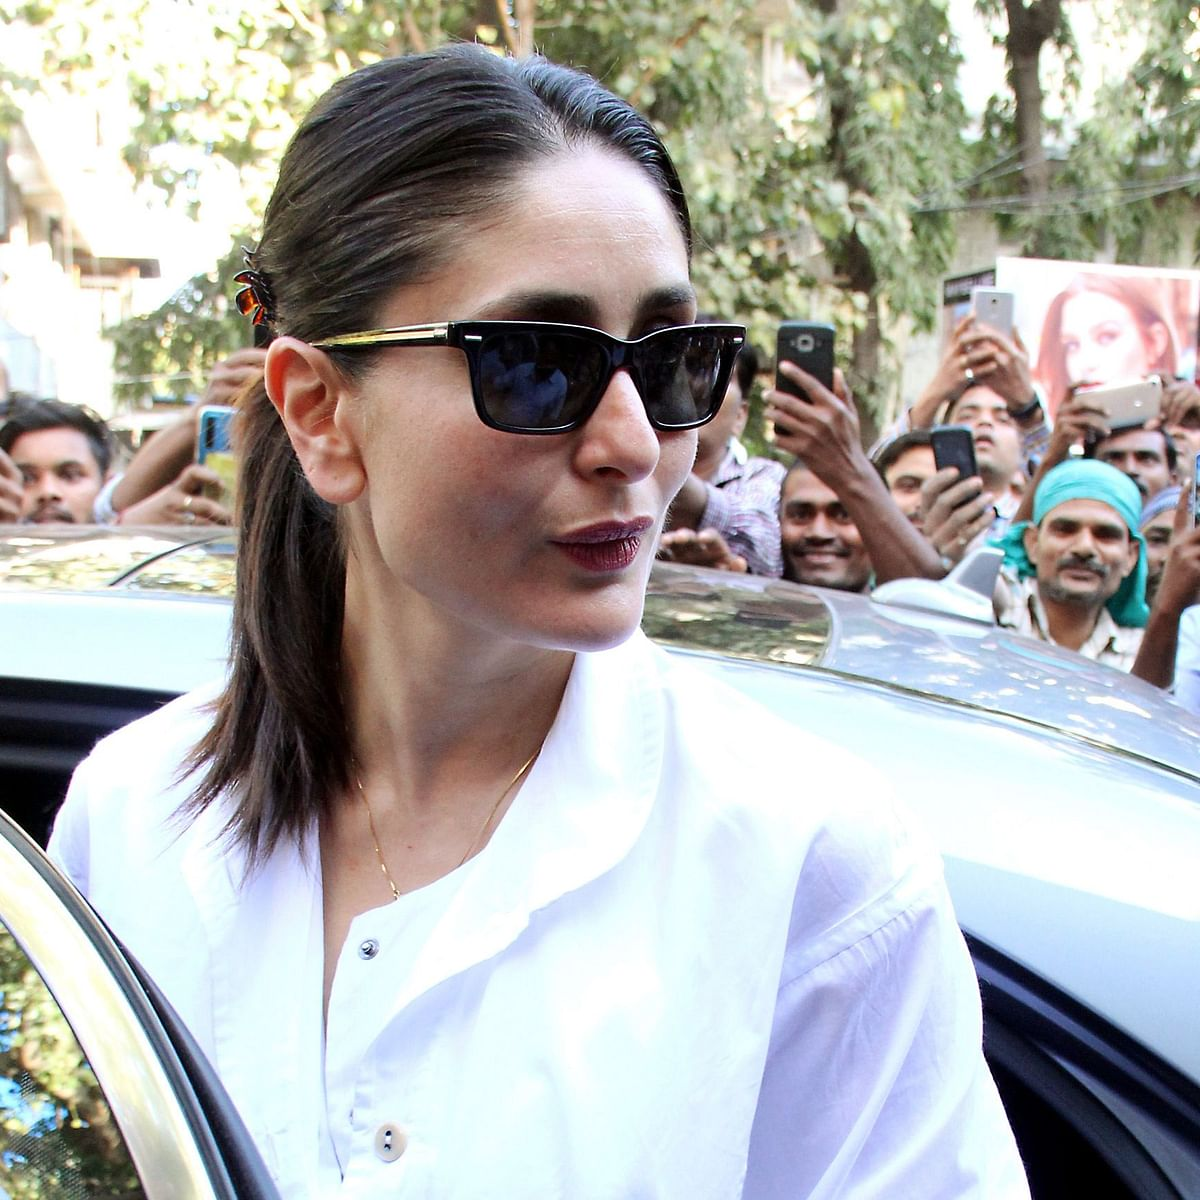 Watch: Kareena Kapoor Khan goes for a test drive in SUV worth nearly Rs 1.14 crore